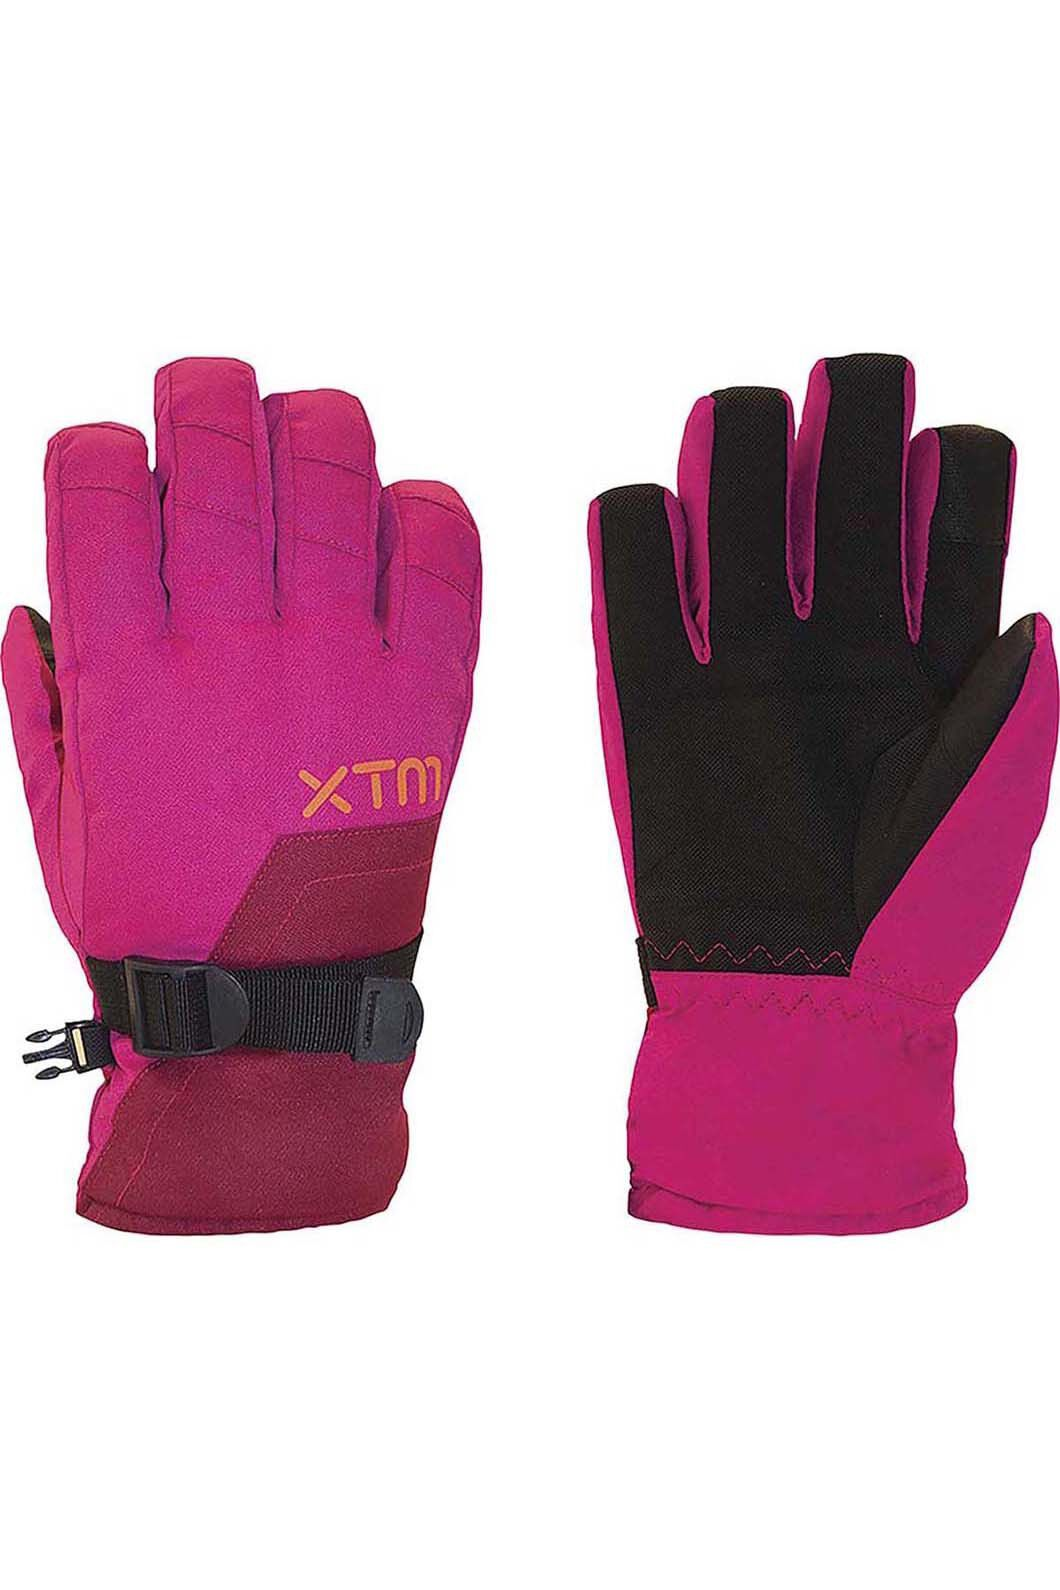 XTM Kids' Zima Gloves, Hot Pink, hi-res